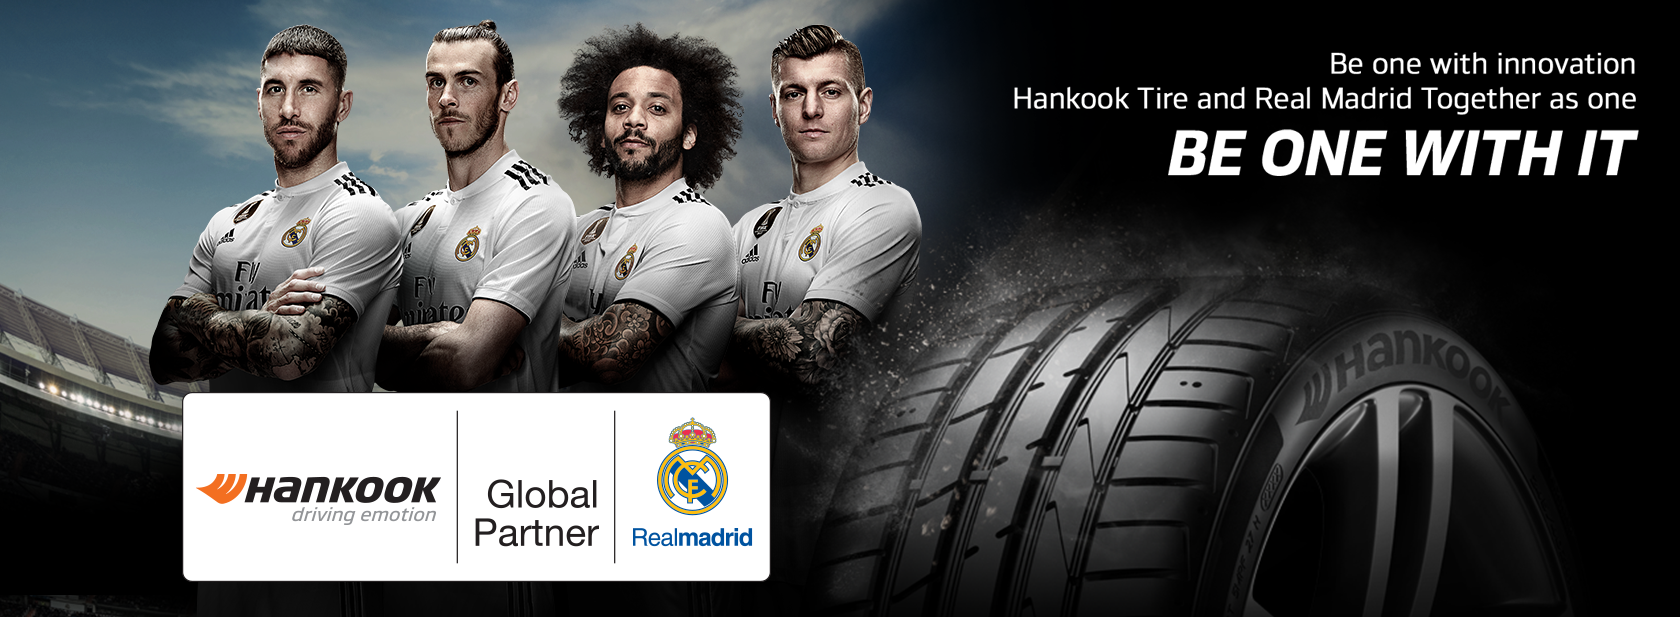 hankook global partner